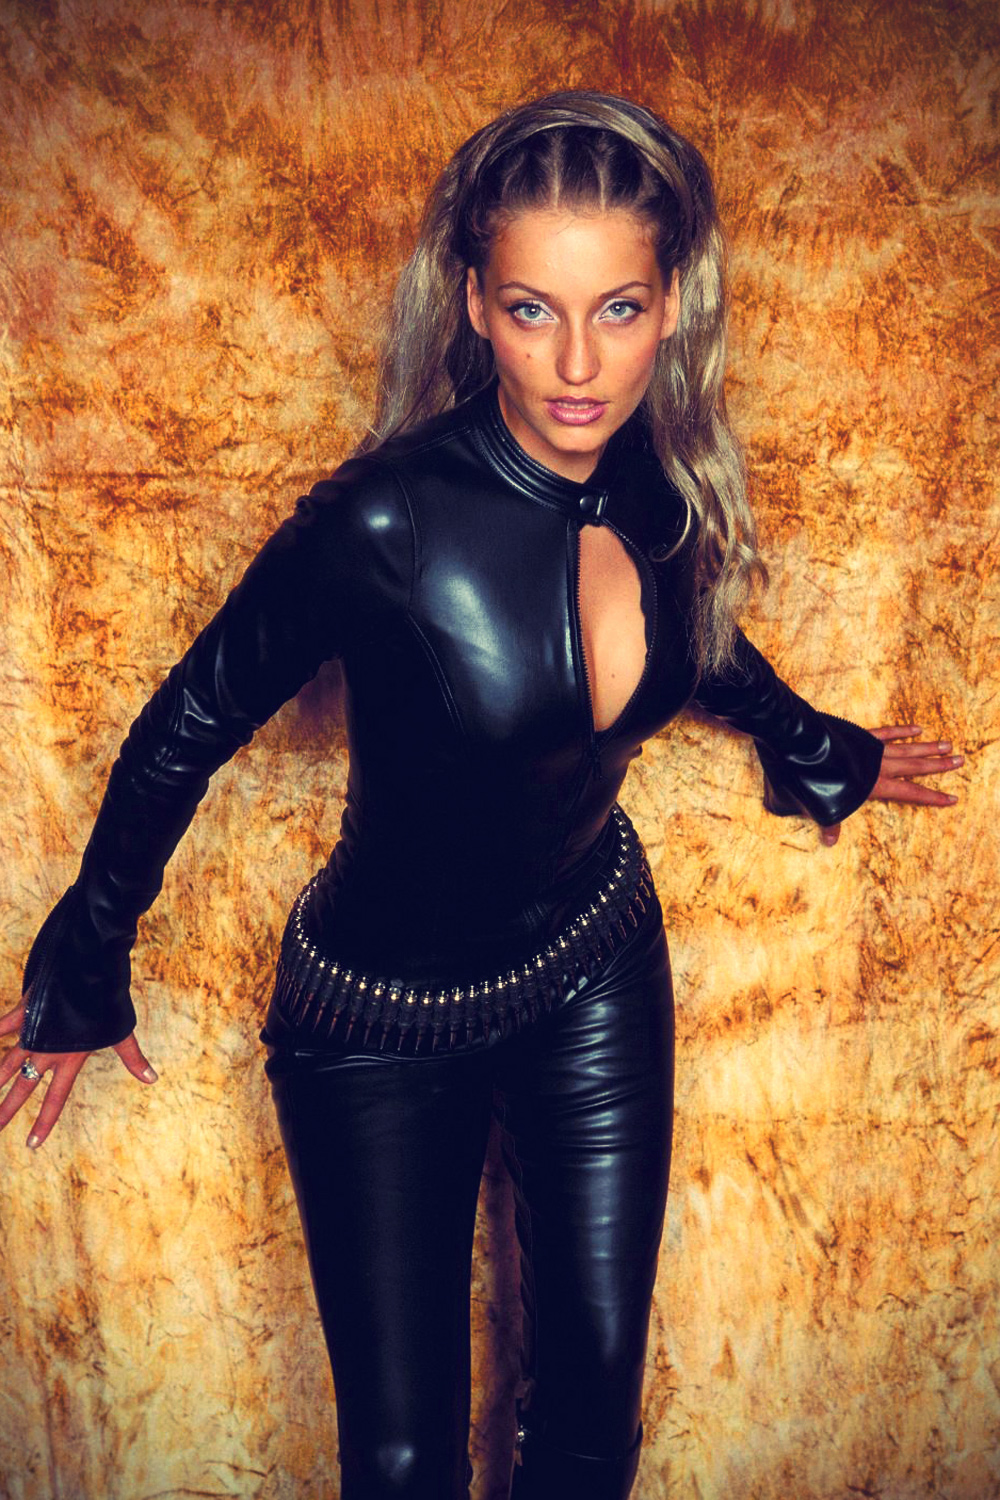 Juliette - Sexy Photoshoot in Catsuit